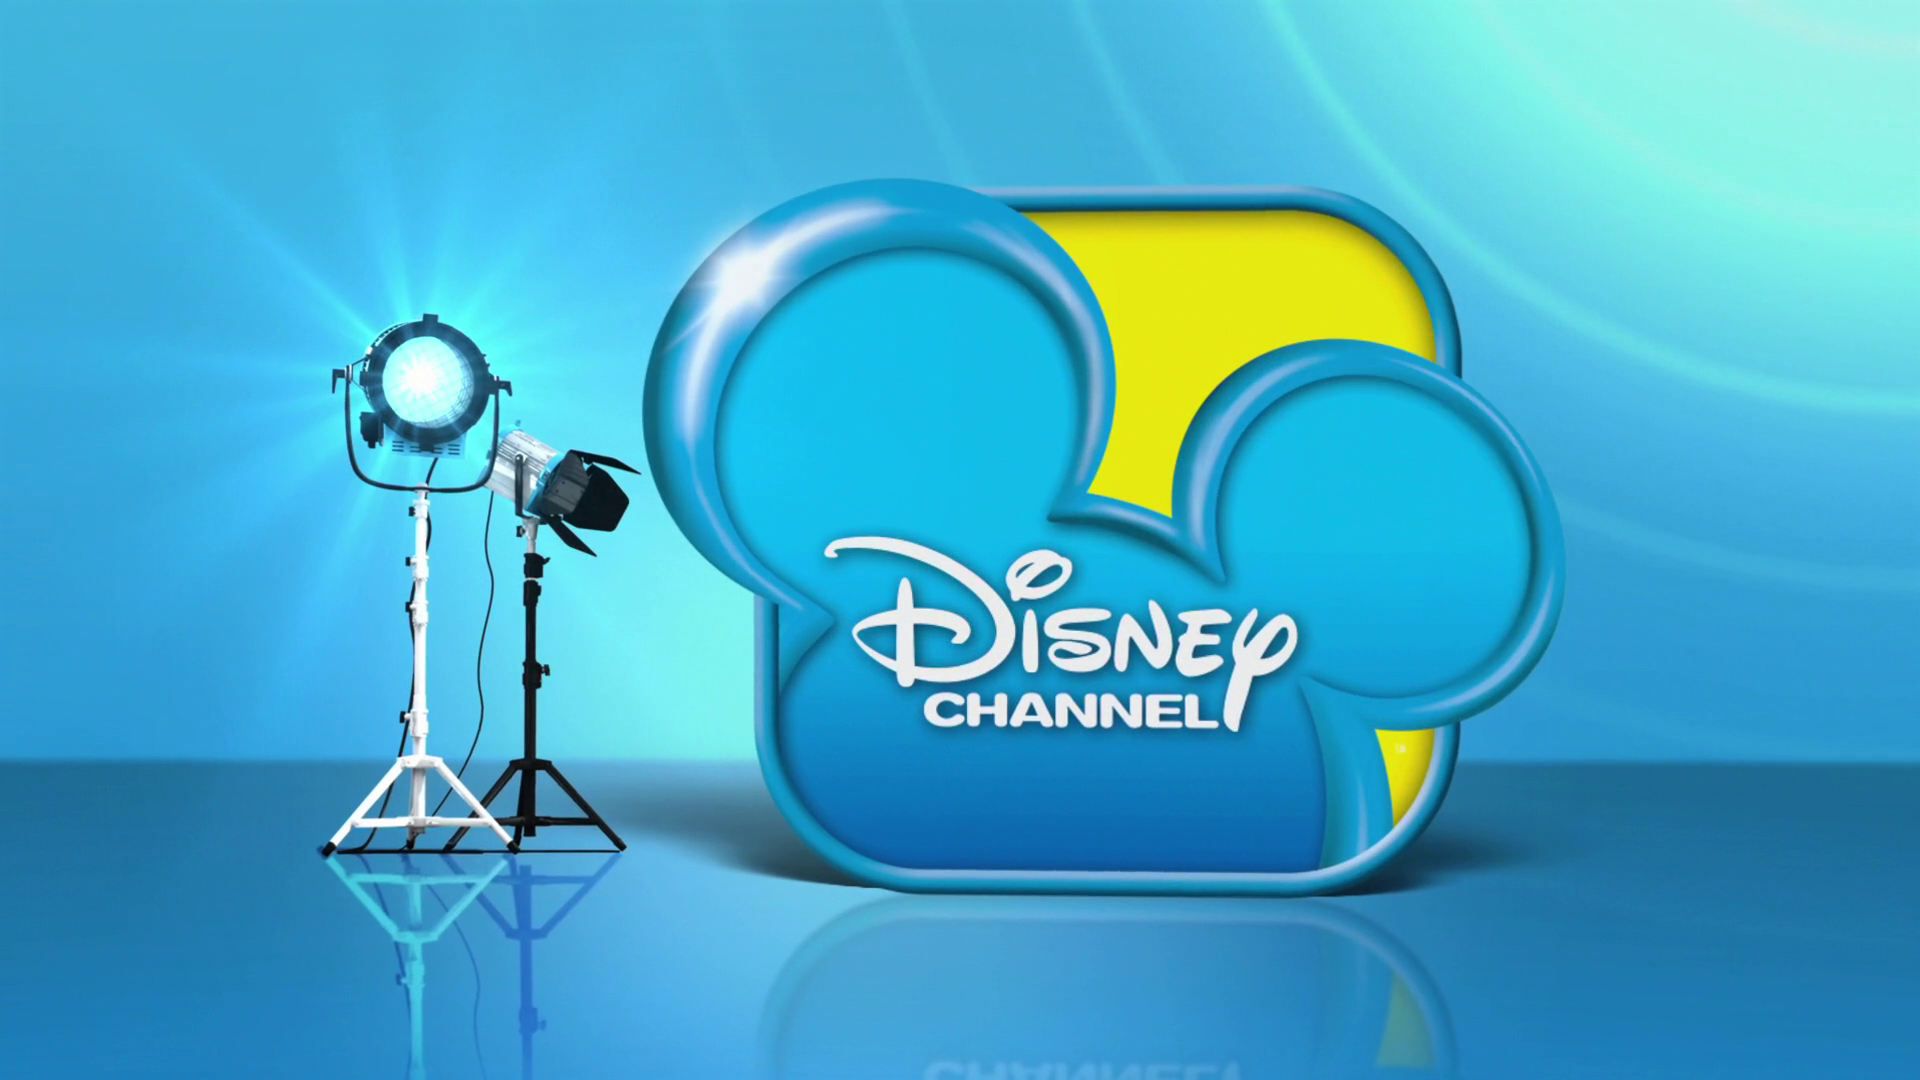 Disney Channel Original Movie - Logopedia, the logo and ...